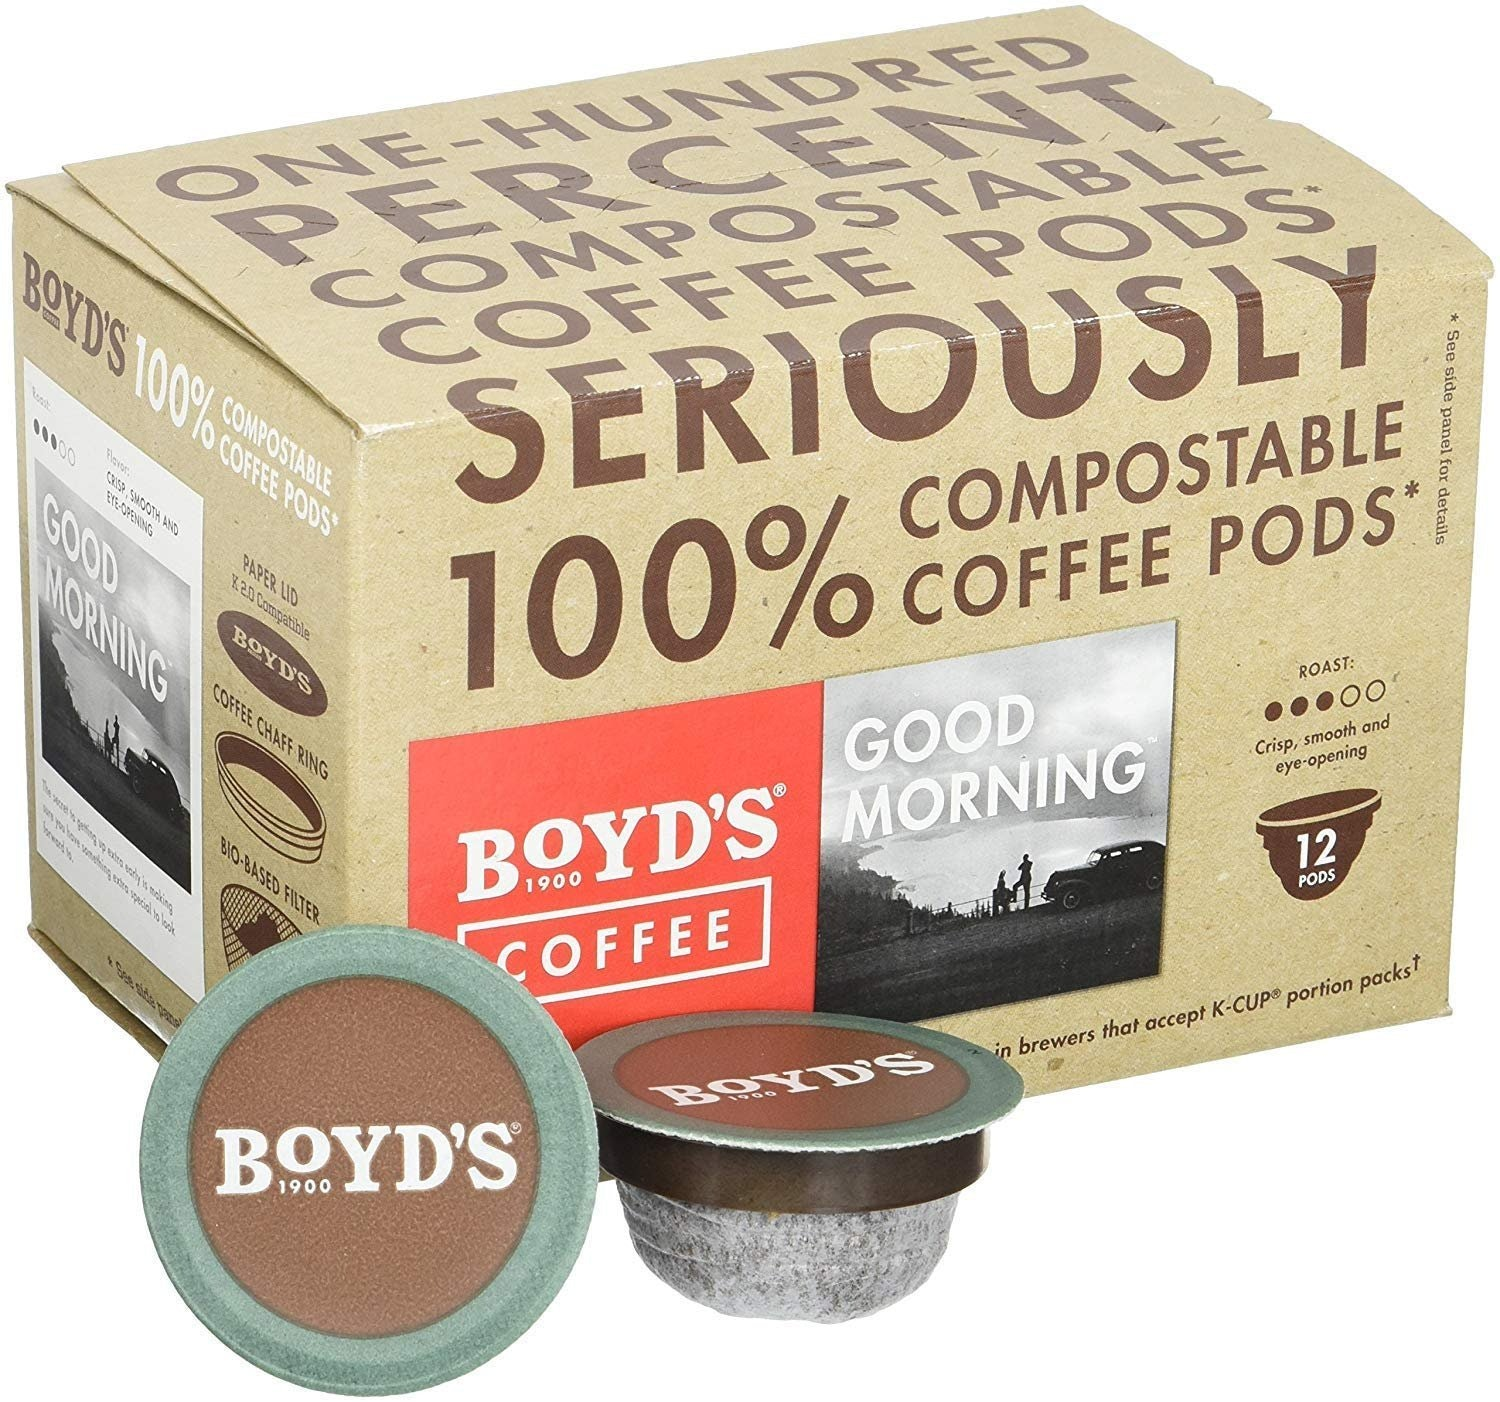 Boyd's Good Morning Coffee - Medium Roast